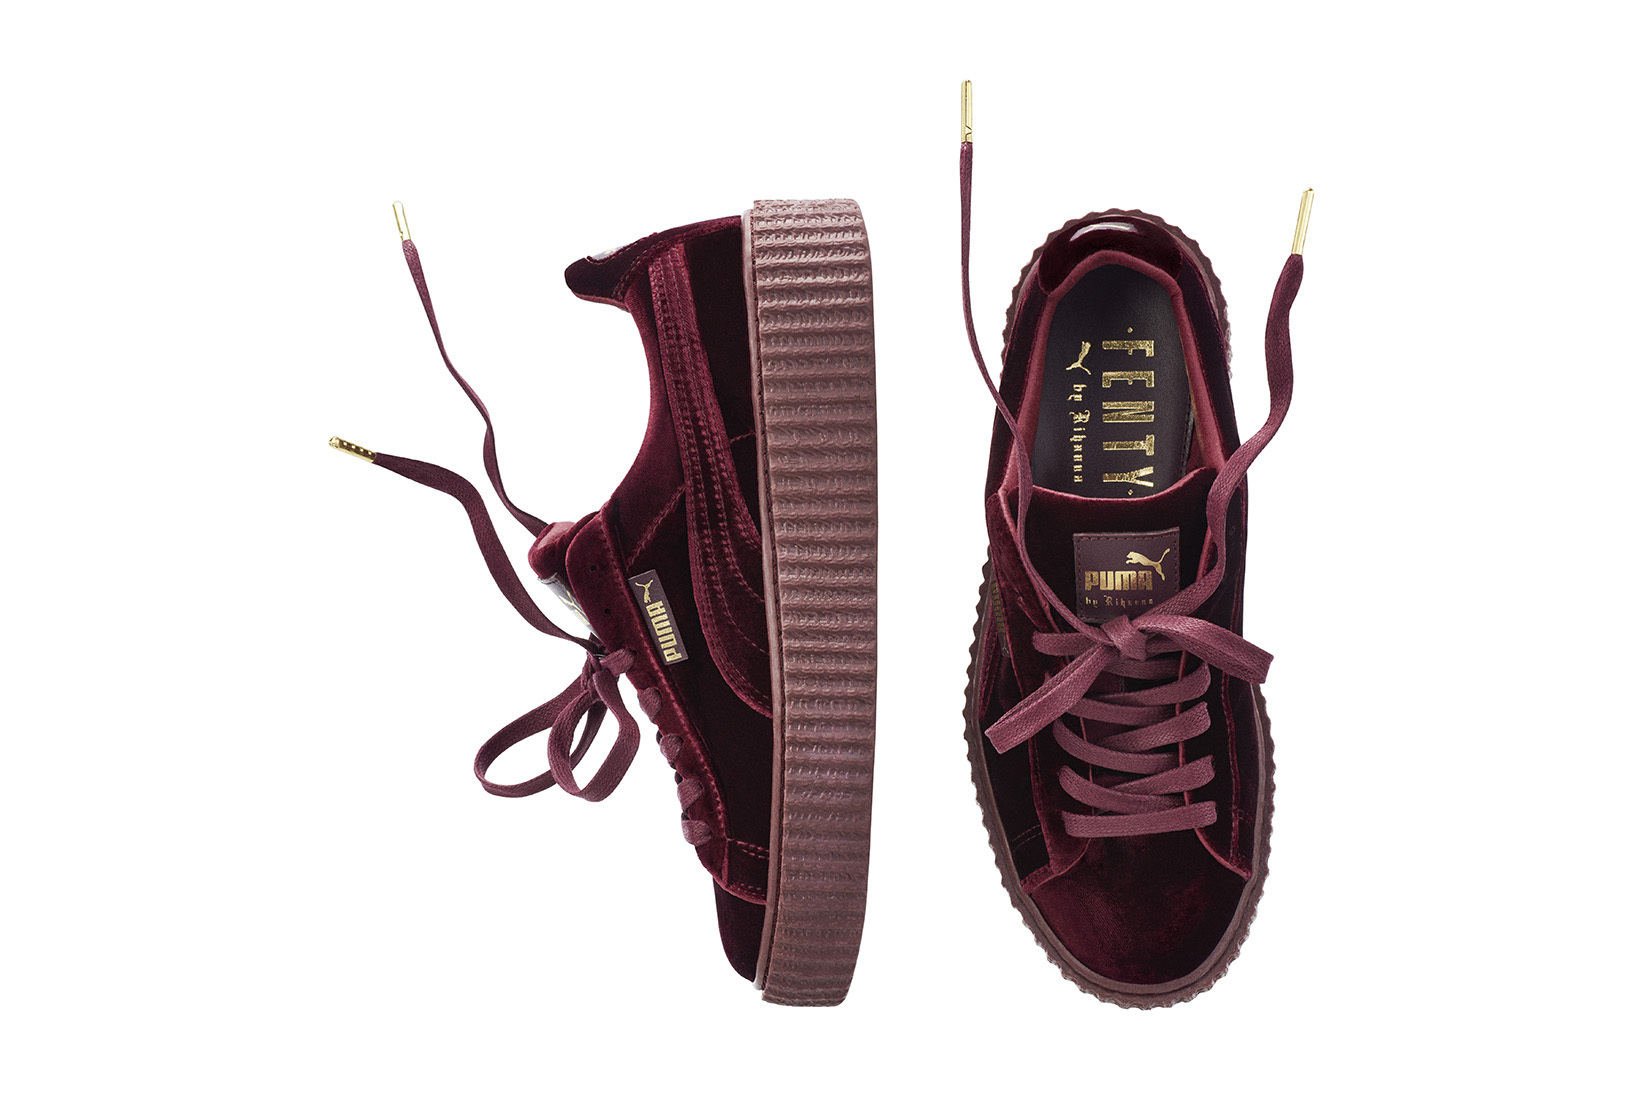 Fenty x Puma by Rihanna Velvet Creepers - TRENDS periodical